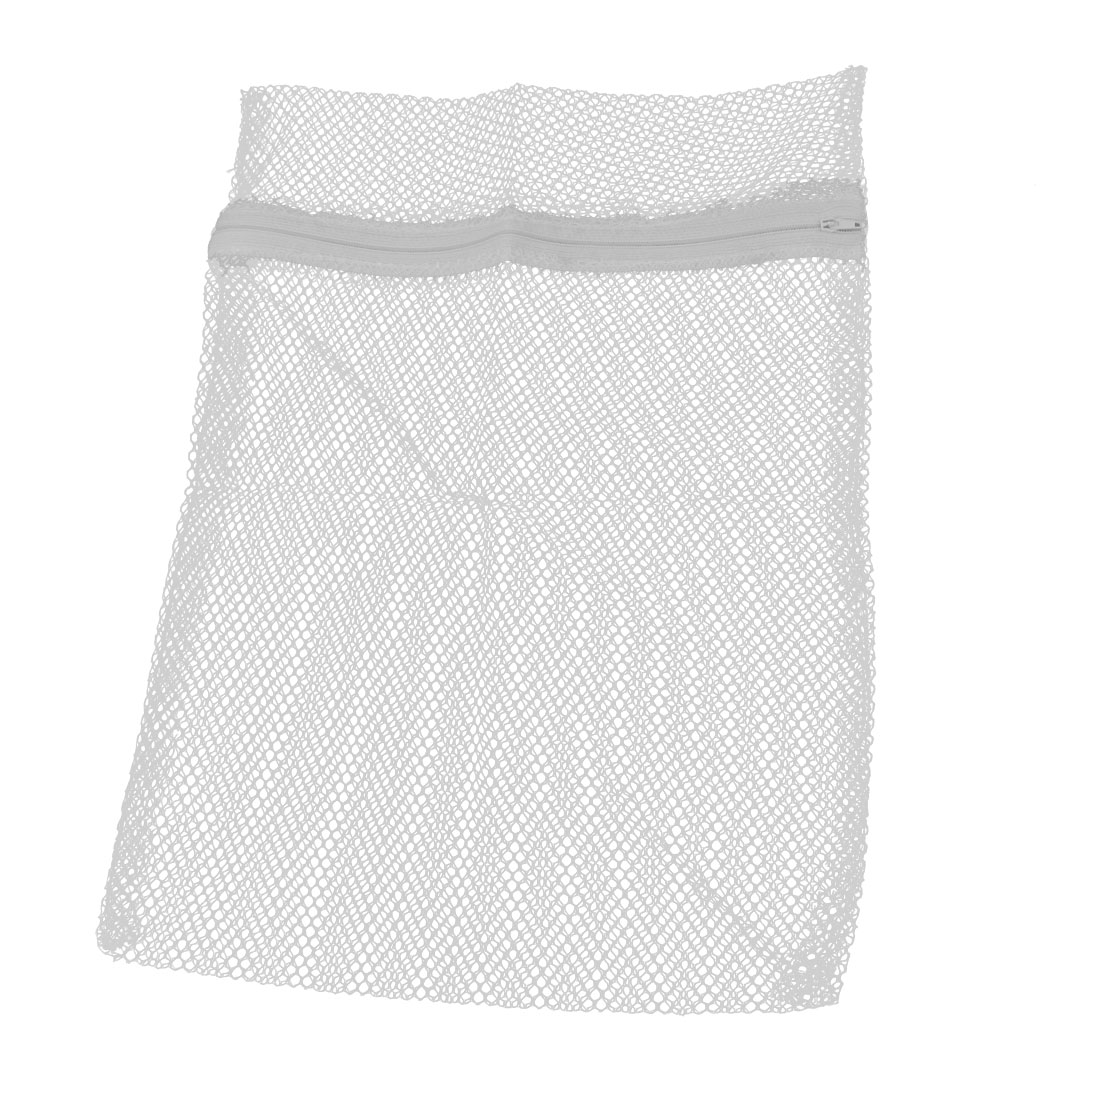 Household Dirty Clothes Laundry Folding Mesh Bag Holder White 38x29cm